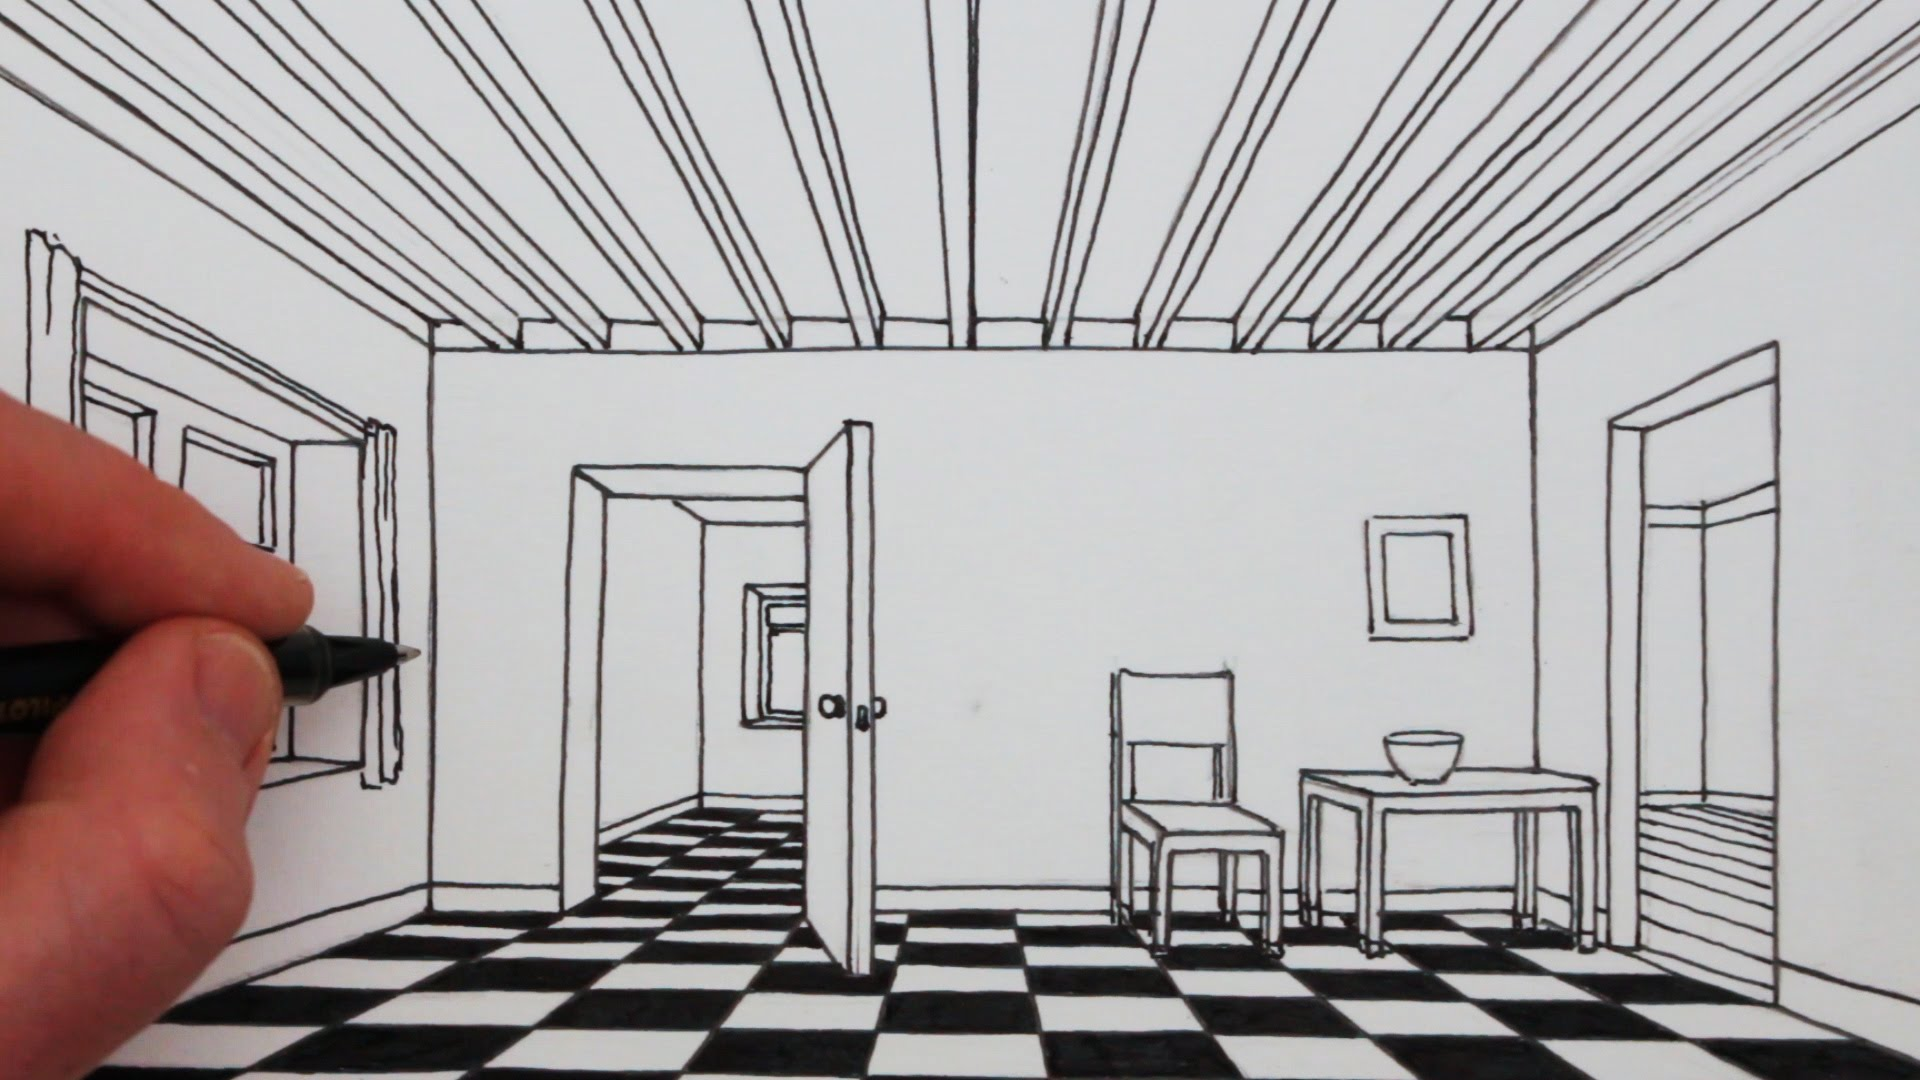 Bedroom Perspective Drawing At Getdrawings Com Free For